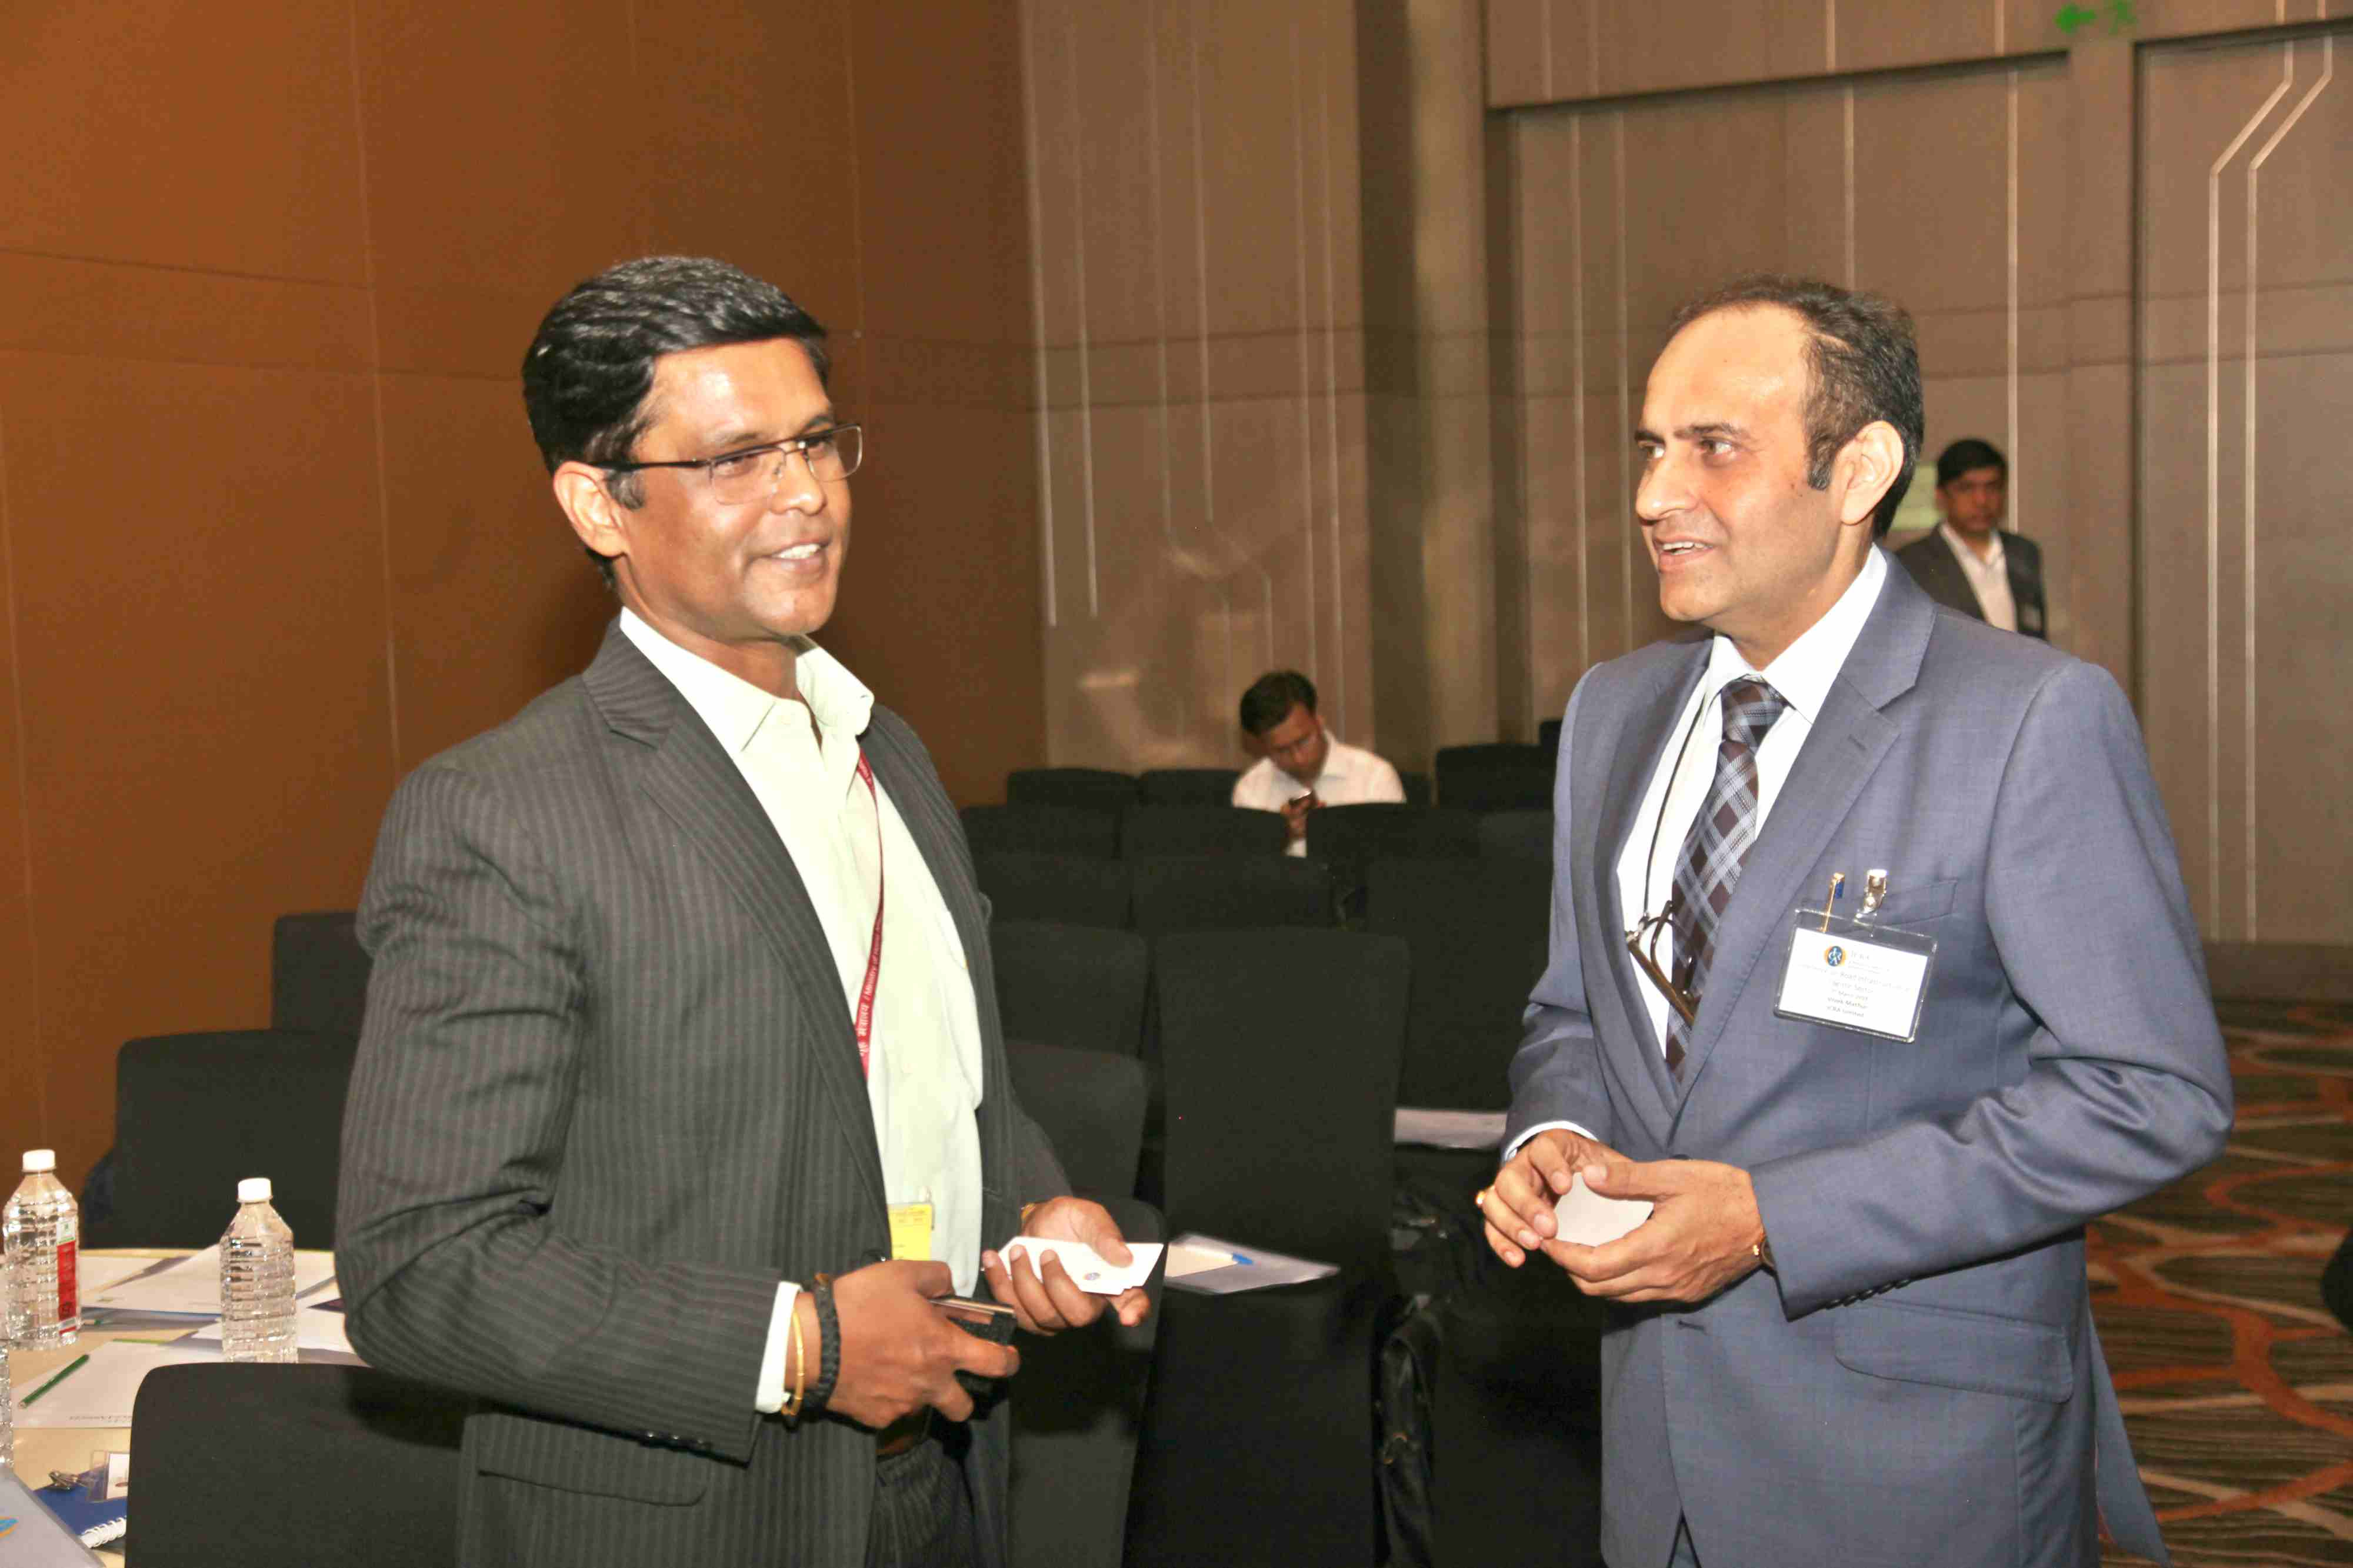 Mr. Keshav Chandra, Joint Secretary (Logistics), Department of Commerce, Ministry of Commerce and Industry, Government of India and Mr. Vivek Mathur, EVP & Head Rating Operations, ICRA sharing a candid moment